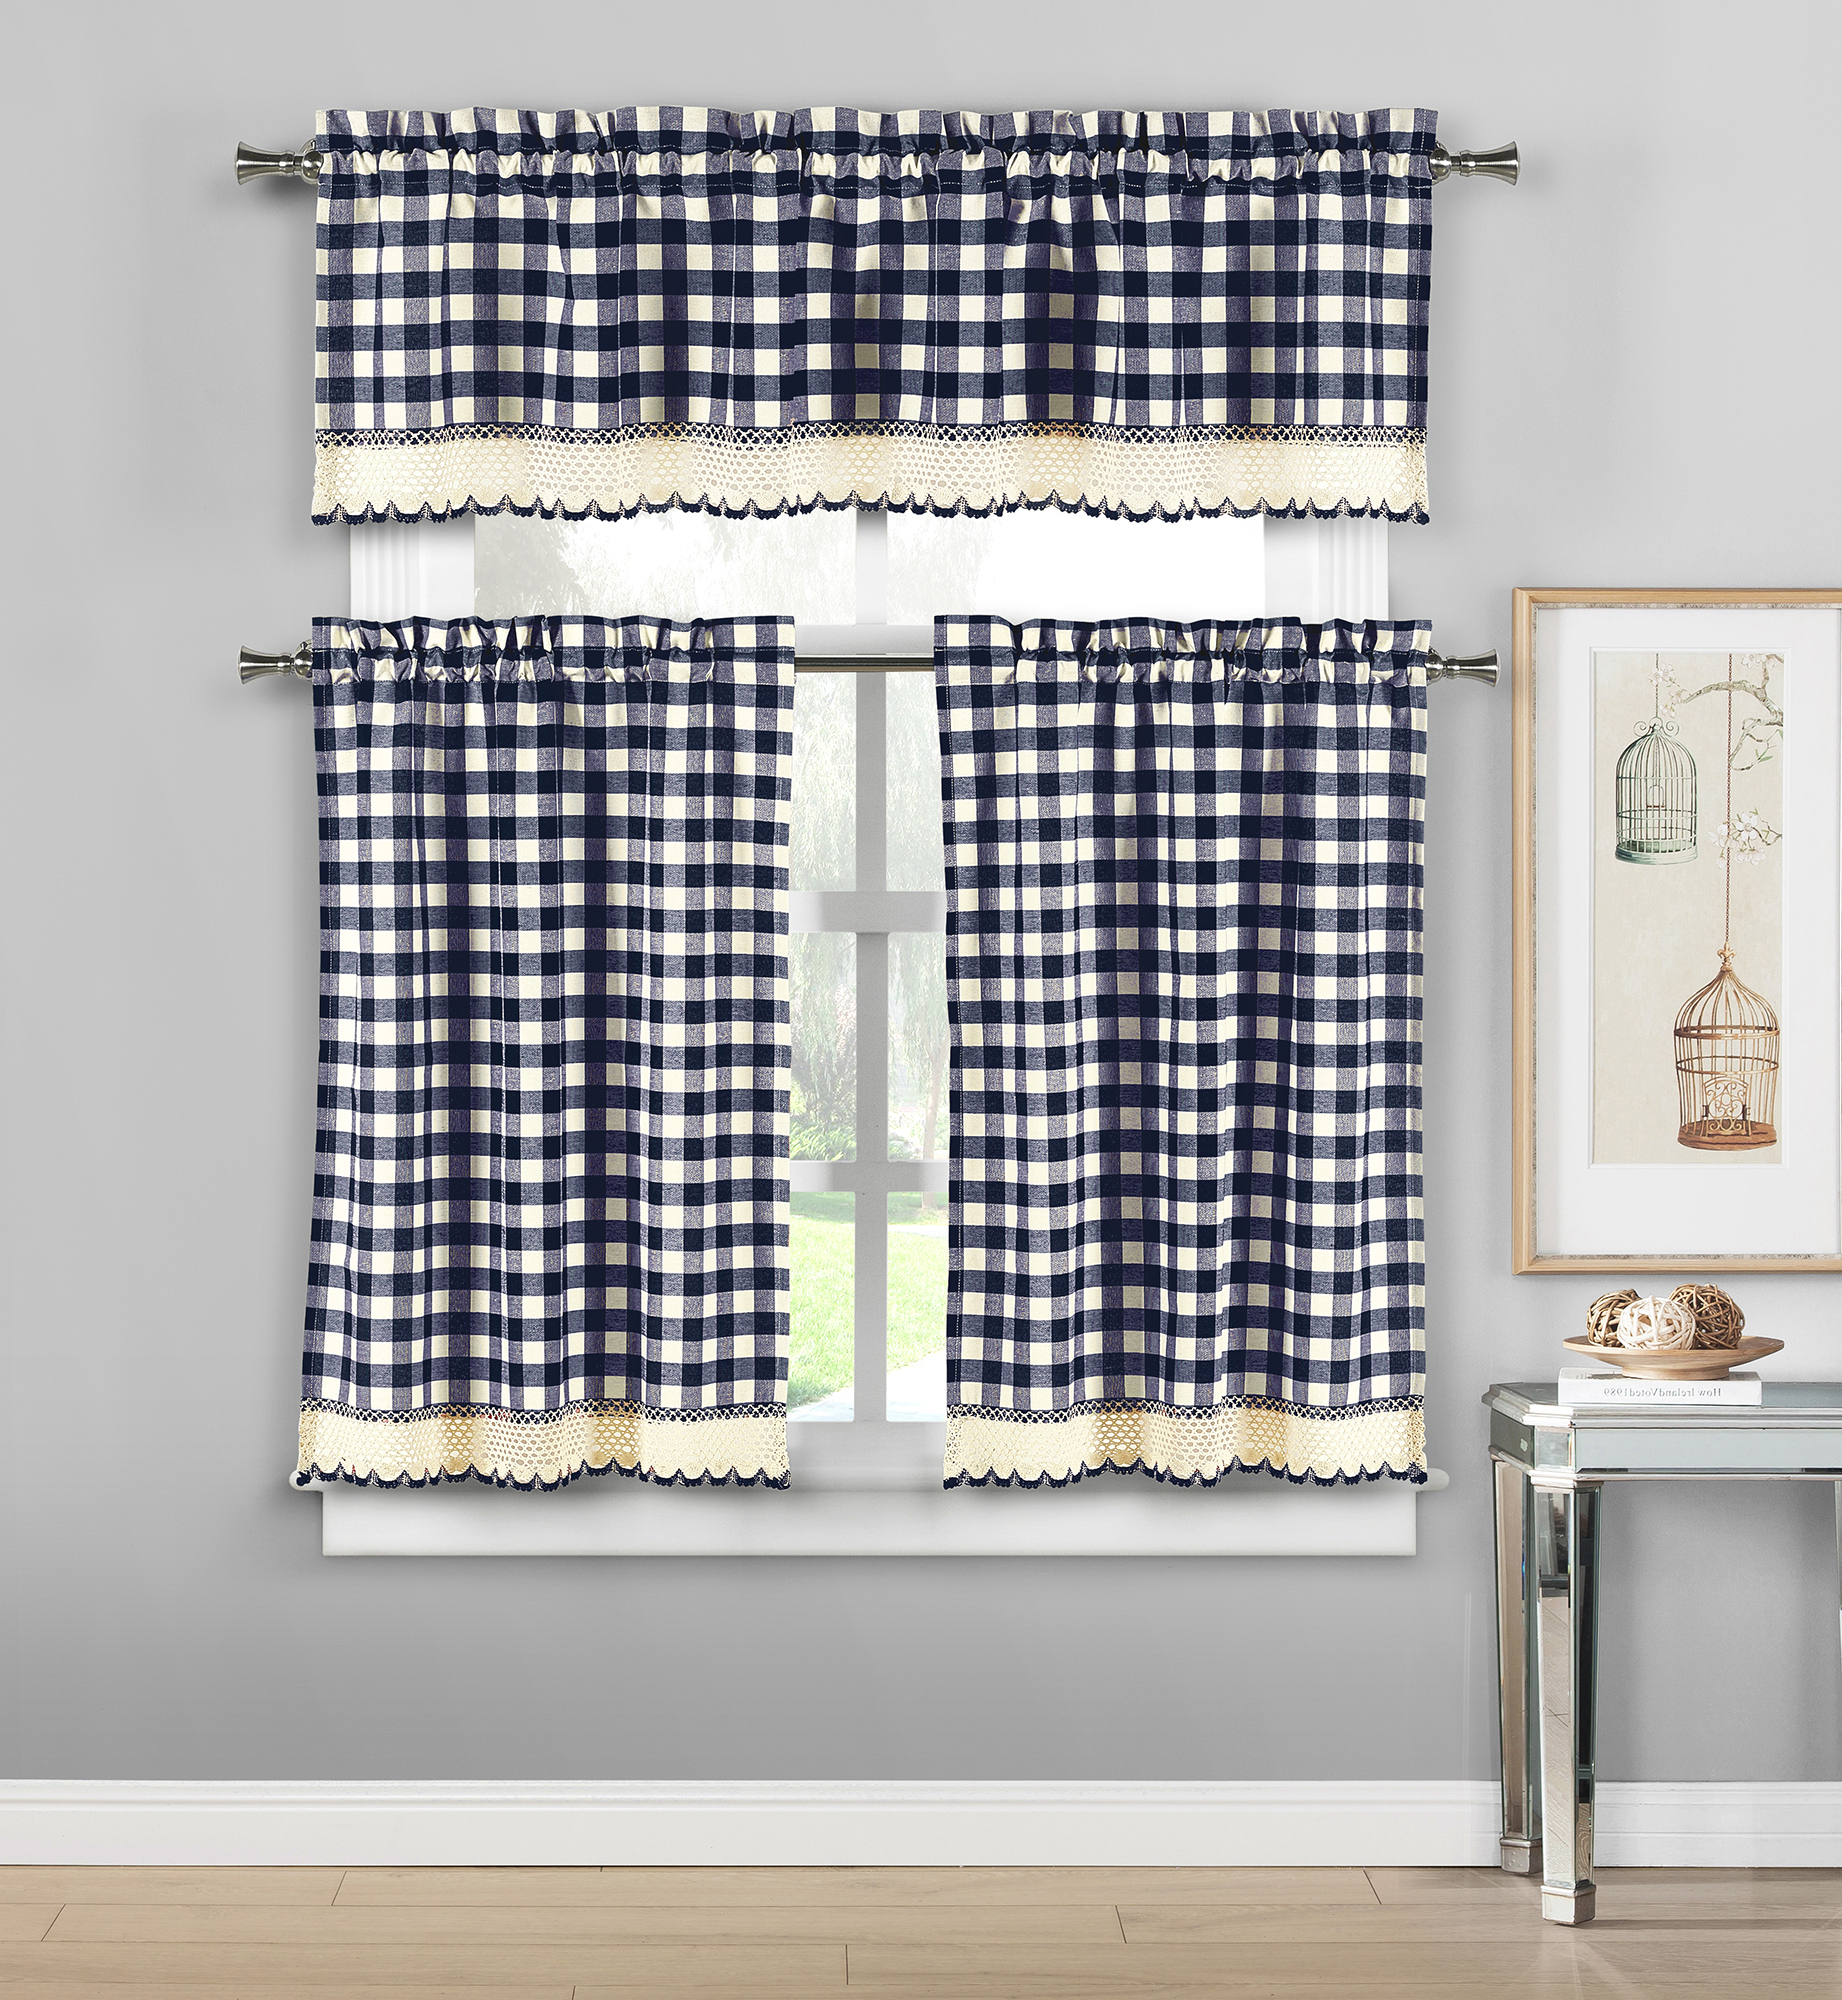 [%details About Plaid Checkered 100% Cotton 3 Piece Set Window Kitchen Curtain Tier & Valance Throughout Popular Burgundy Cotton Blend Classic Checkered Decorative Window Curtains|burgundy Cotton Blend Classic Checkered Decorative Window Curtains Pertaining To Favorite Details About Plaid Checkered 100% Cotton 3 Piece Set Window Kitchen Curtain Tier & Valance|widely Used Burgundy Cotton Blend Classic Checkered Decorative Window Curtains Within Details About Plaid Checkered 100% Cotton 3 Piece Set Window Kitchen Curtain Tier & Valance|favorite Details About Plaid Checkered 100% Cotton 3 Piece Set Window Kitchen Curtain Tier & Valance Inside Burgundy Cotton Blend Classic Checkered Decorative Window Curtains%] (View 9 of 20)